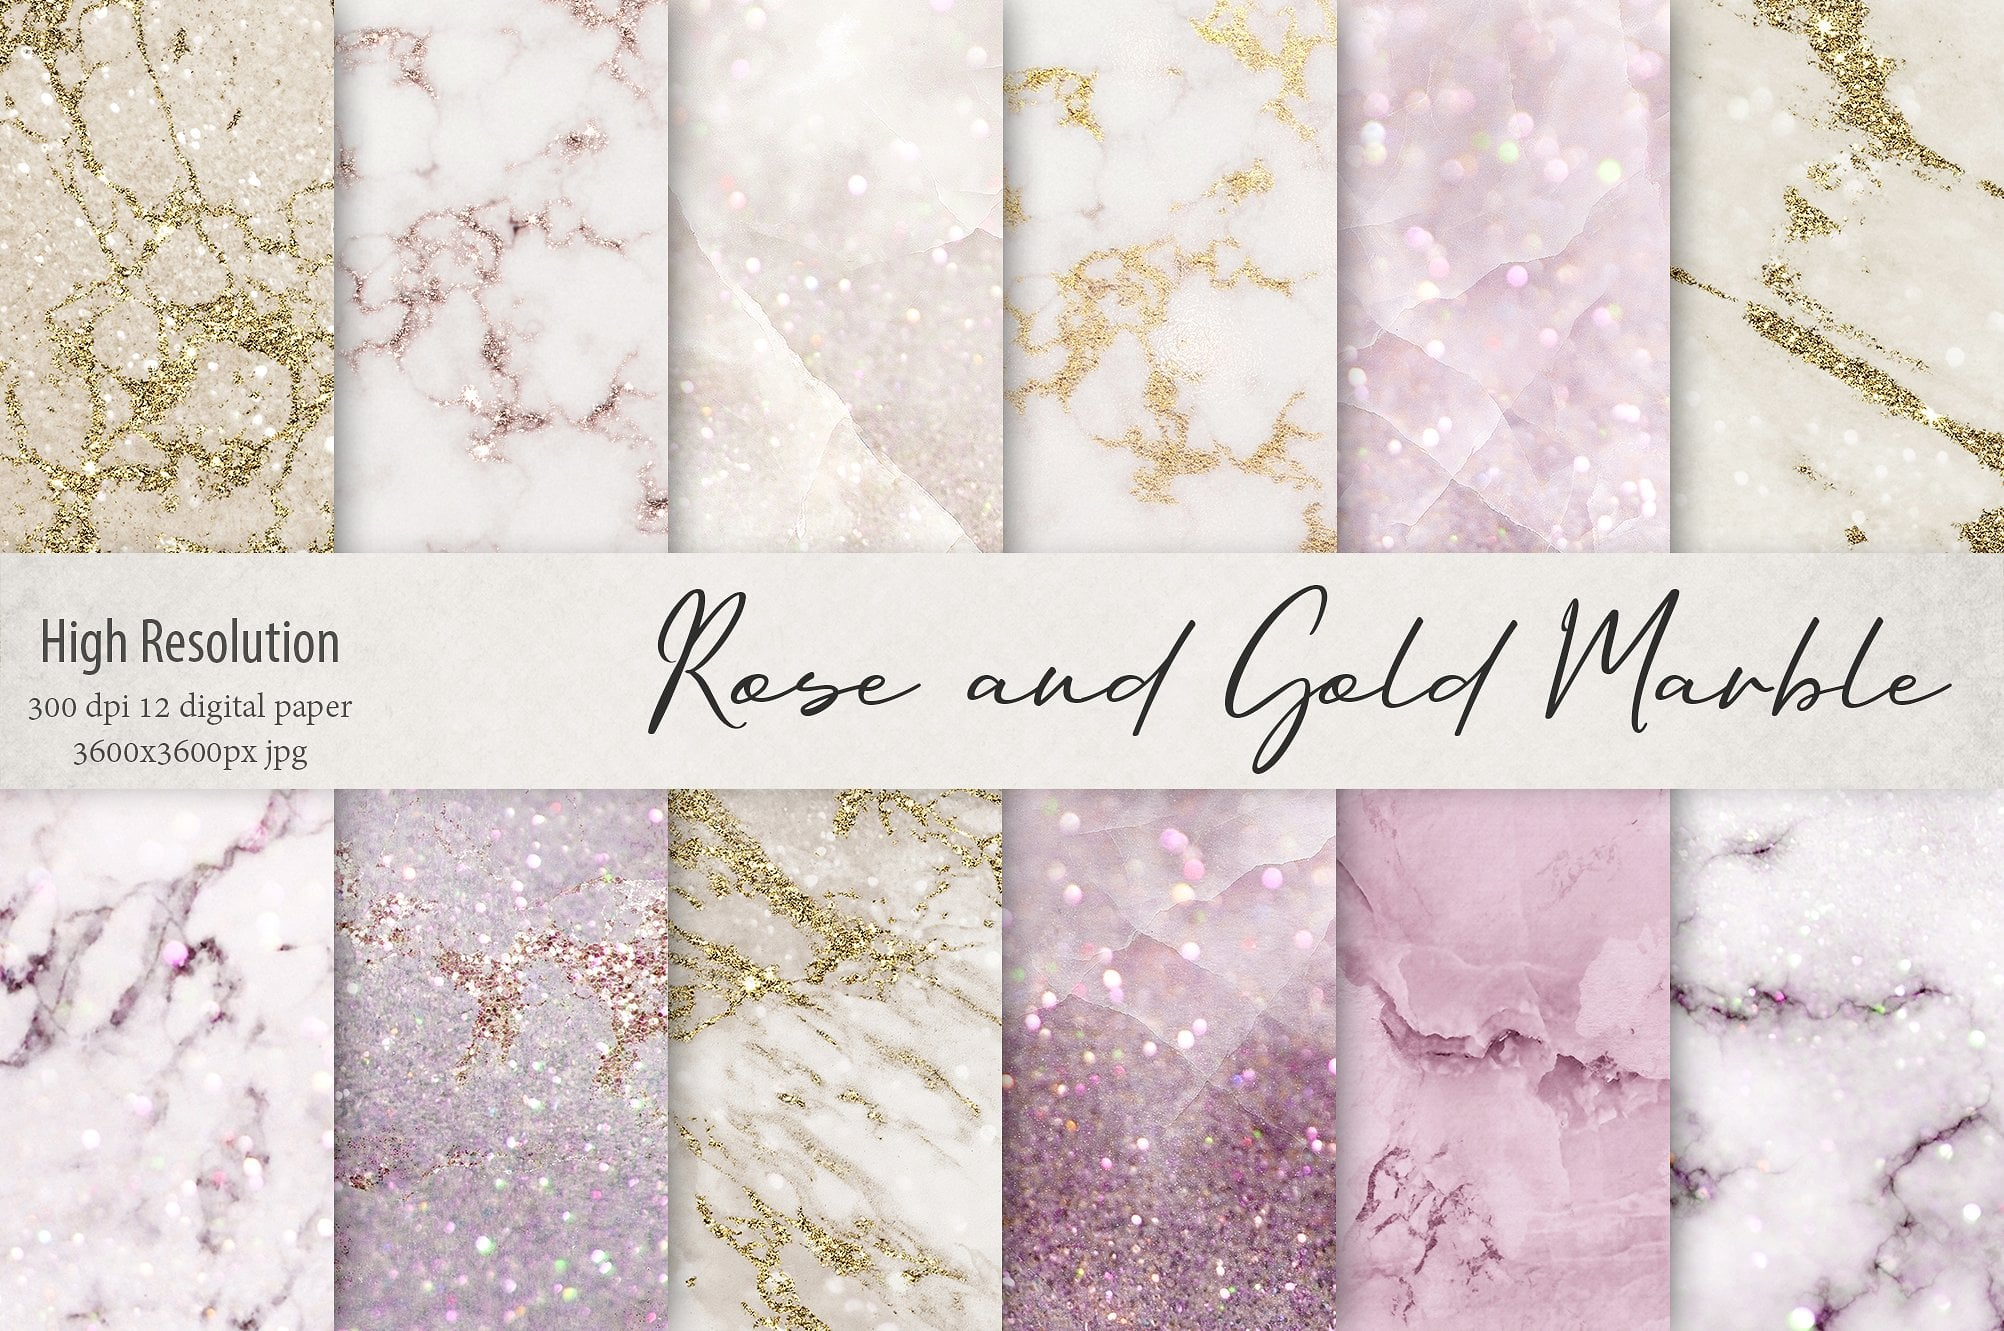 Rose and Gold Luxury Marble Textures